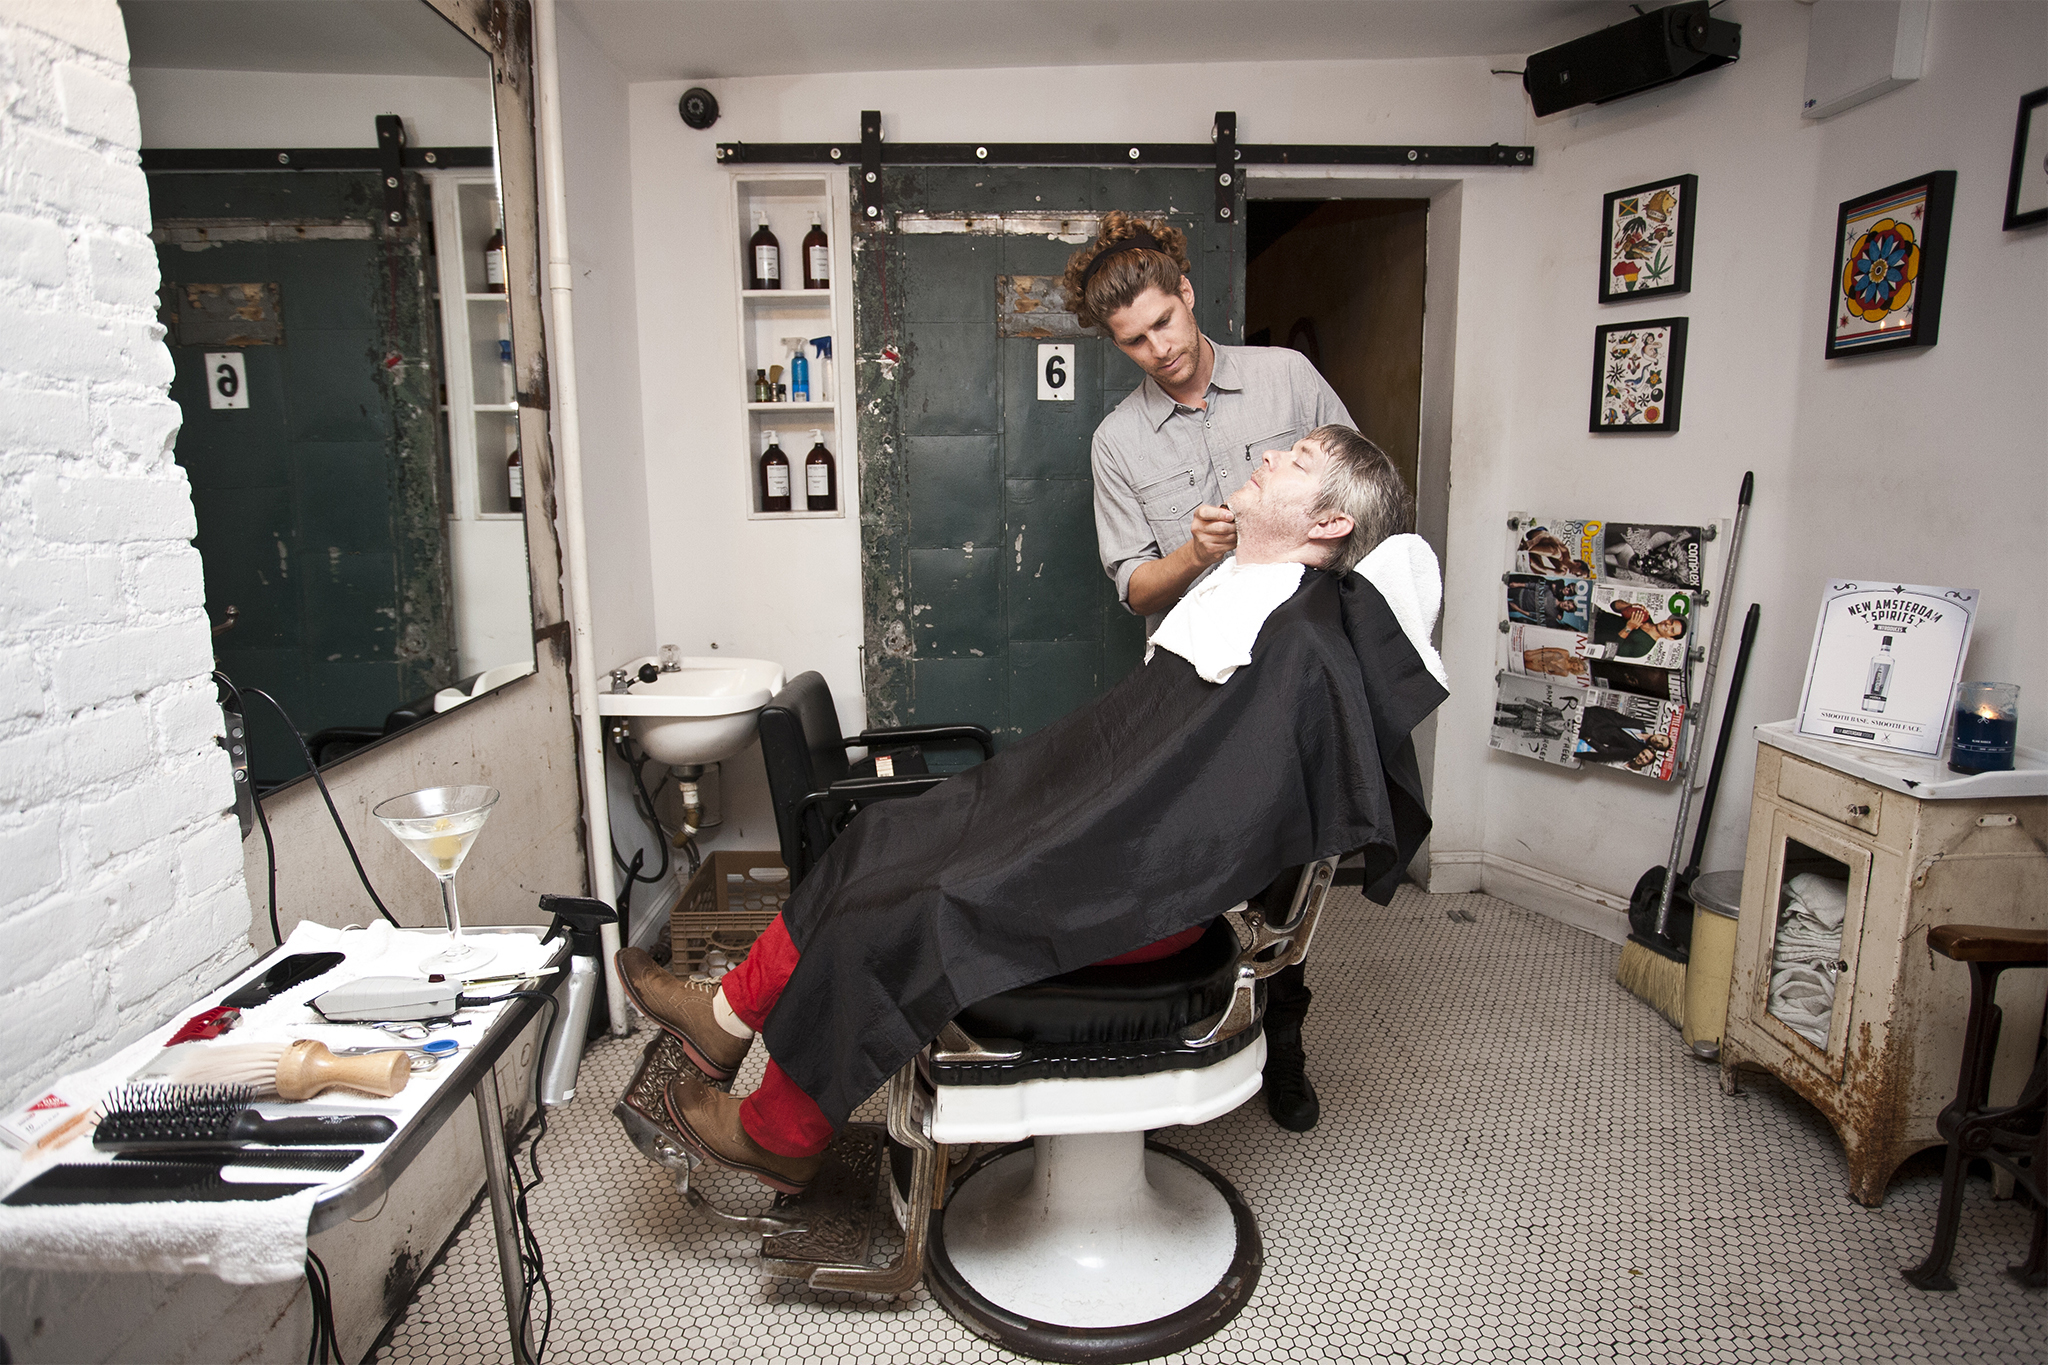 Luke Wessman At A Barber In Lower East Side New York Called Ludlow Supply Beard Tattoos Rolex And Rings